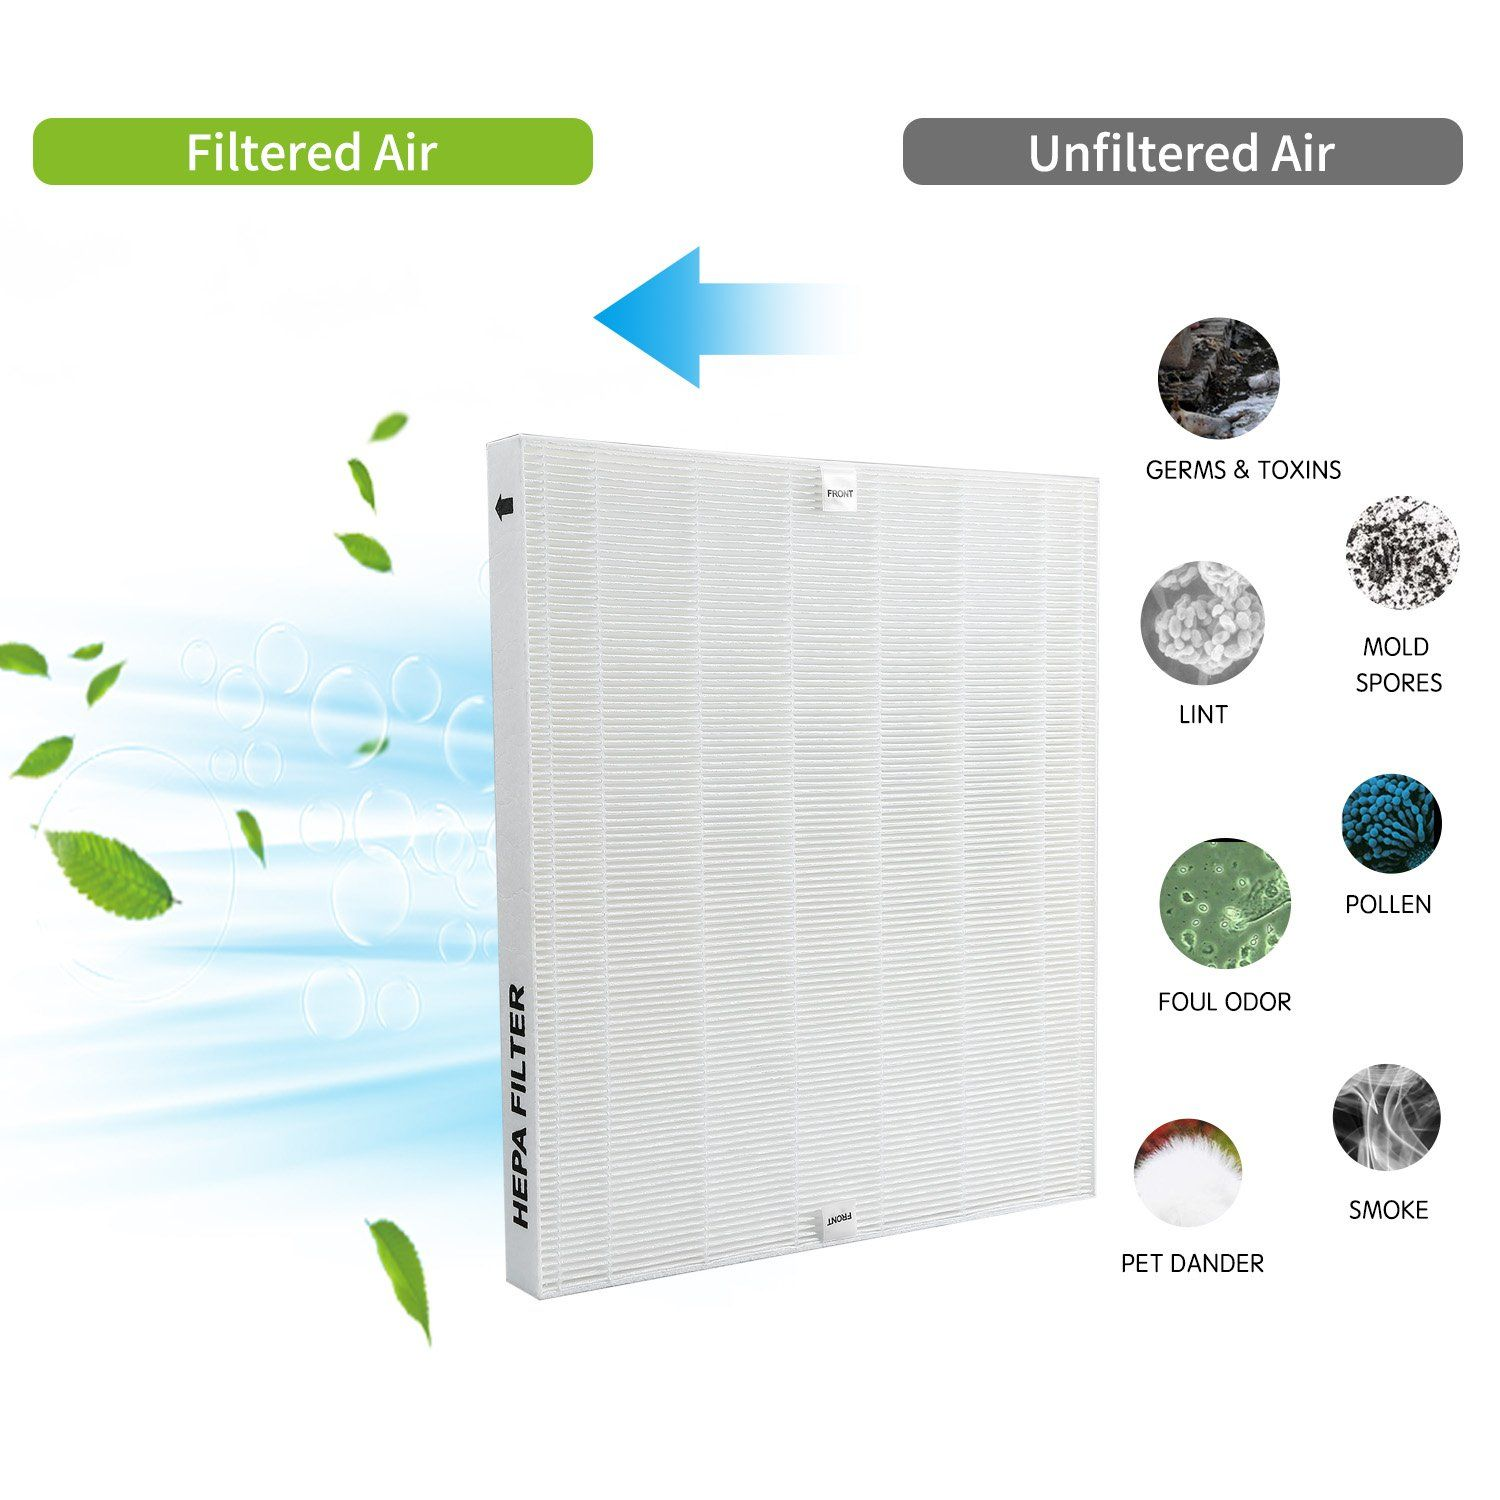 Ogeee Hepa Replacement Filter For Coway Ap1512hh Air Purifiers 2 You Can Find Out More Details At The Link Air Filter Lights Air Purifier Home Air Purifier